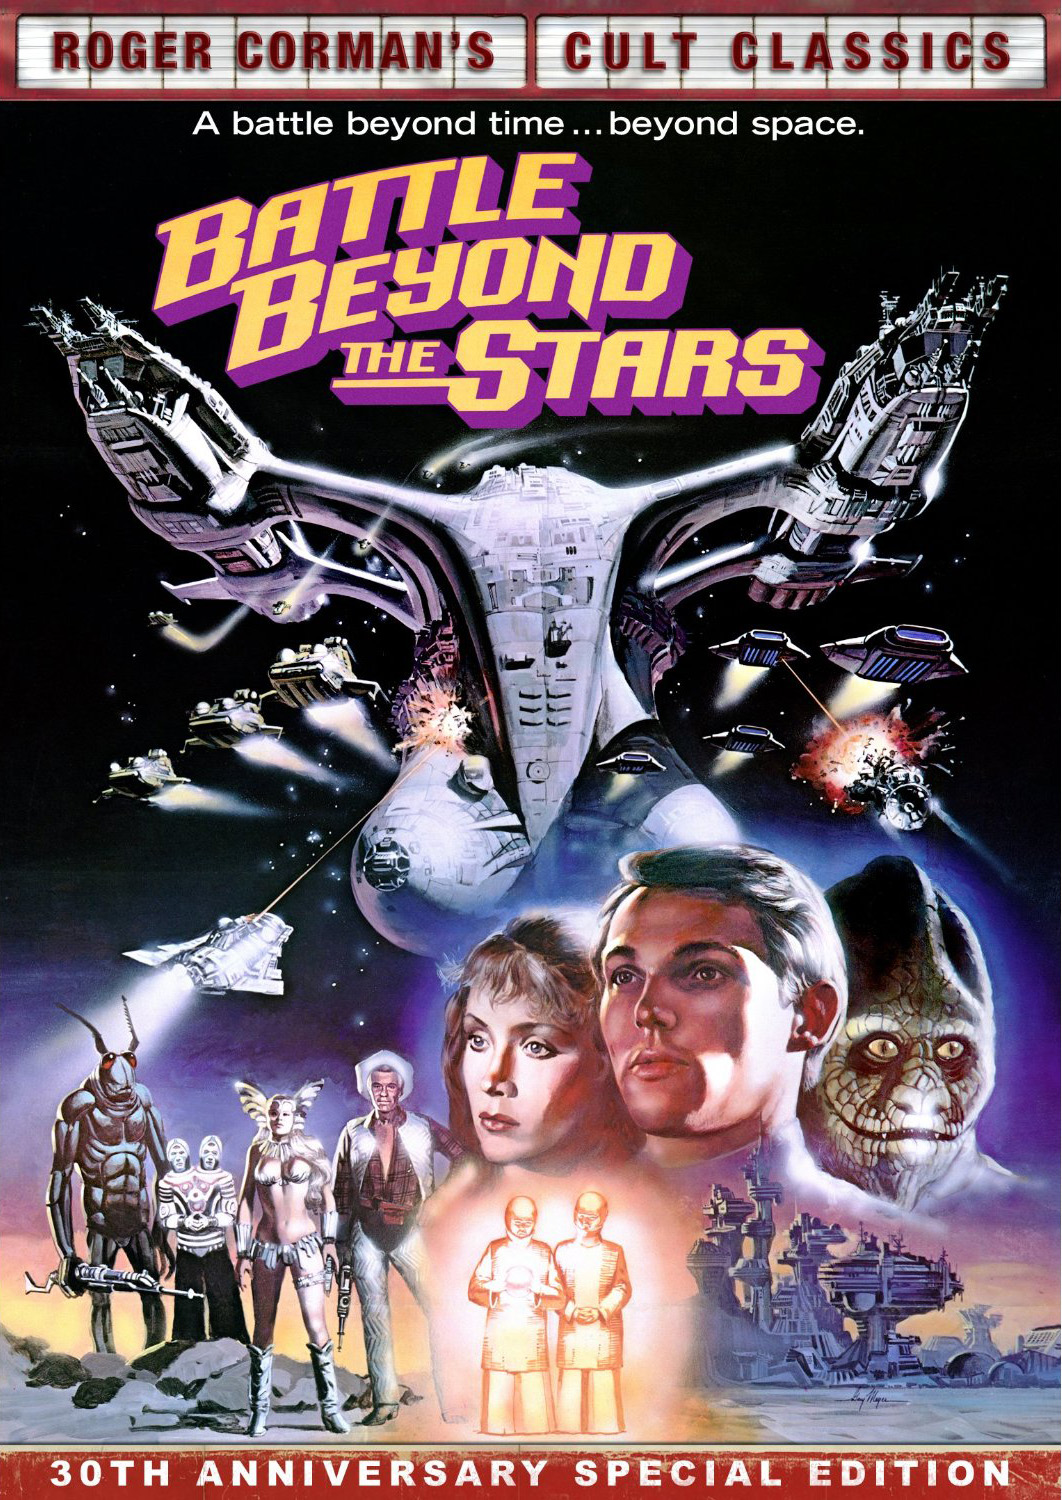 'Battle Beyond the Stars' poster